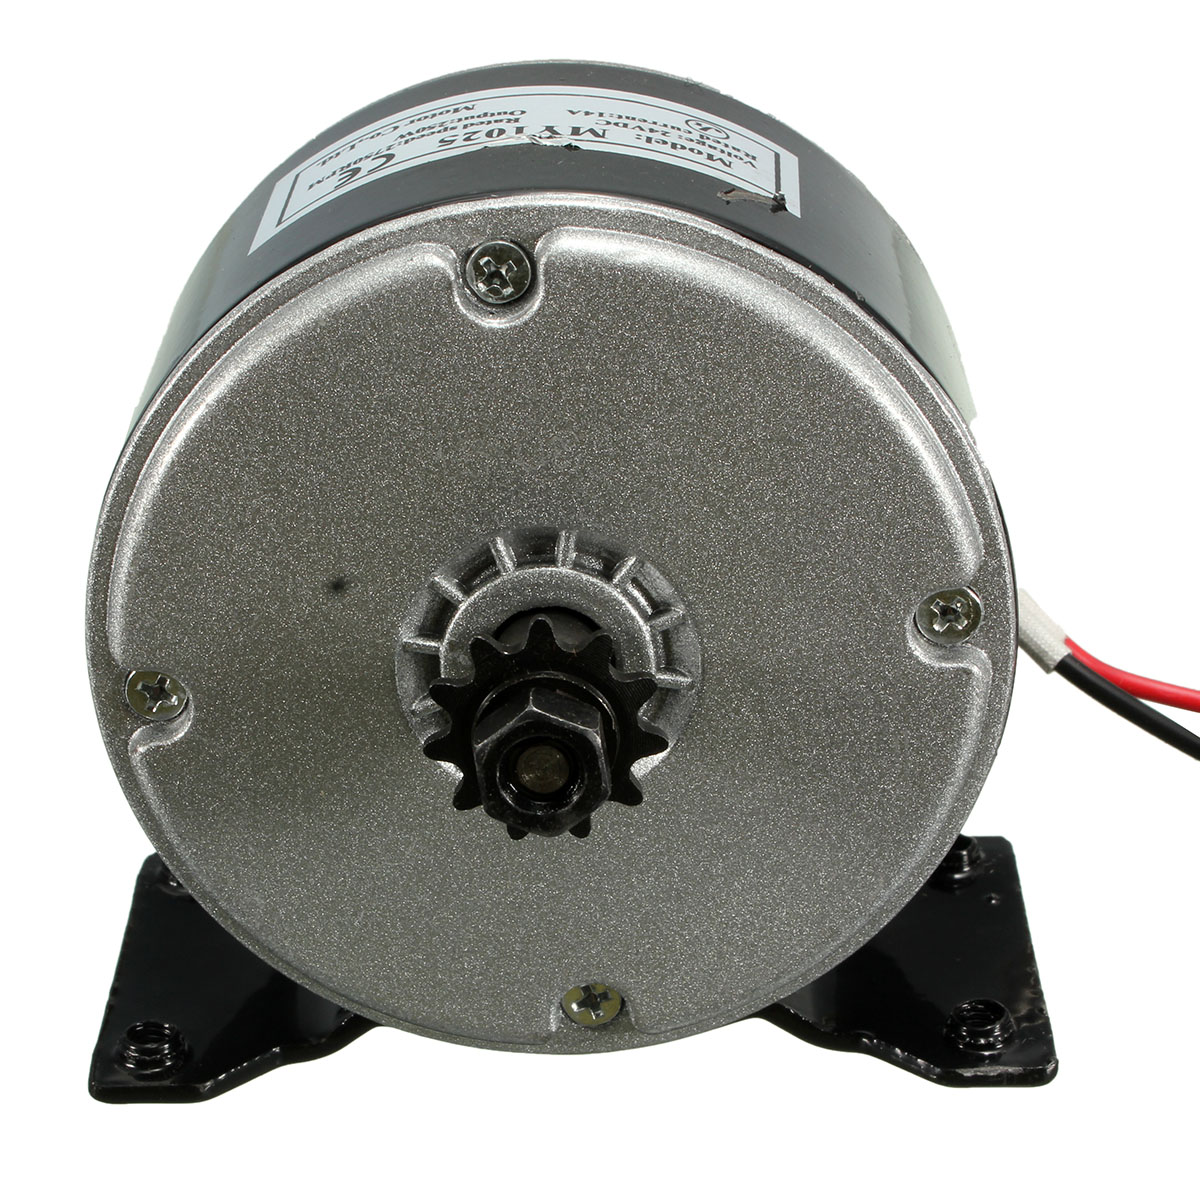 24v Dc Electric Motor Brushed 250w 2750rpm 2 Wired Chain